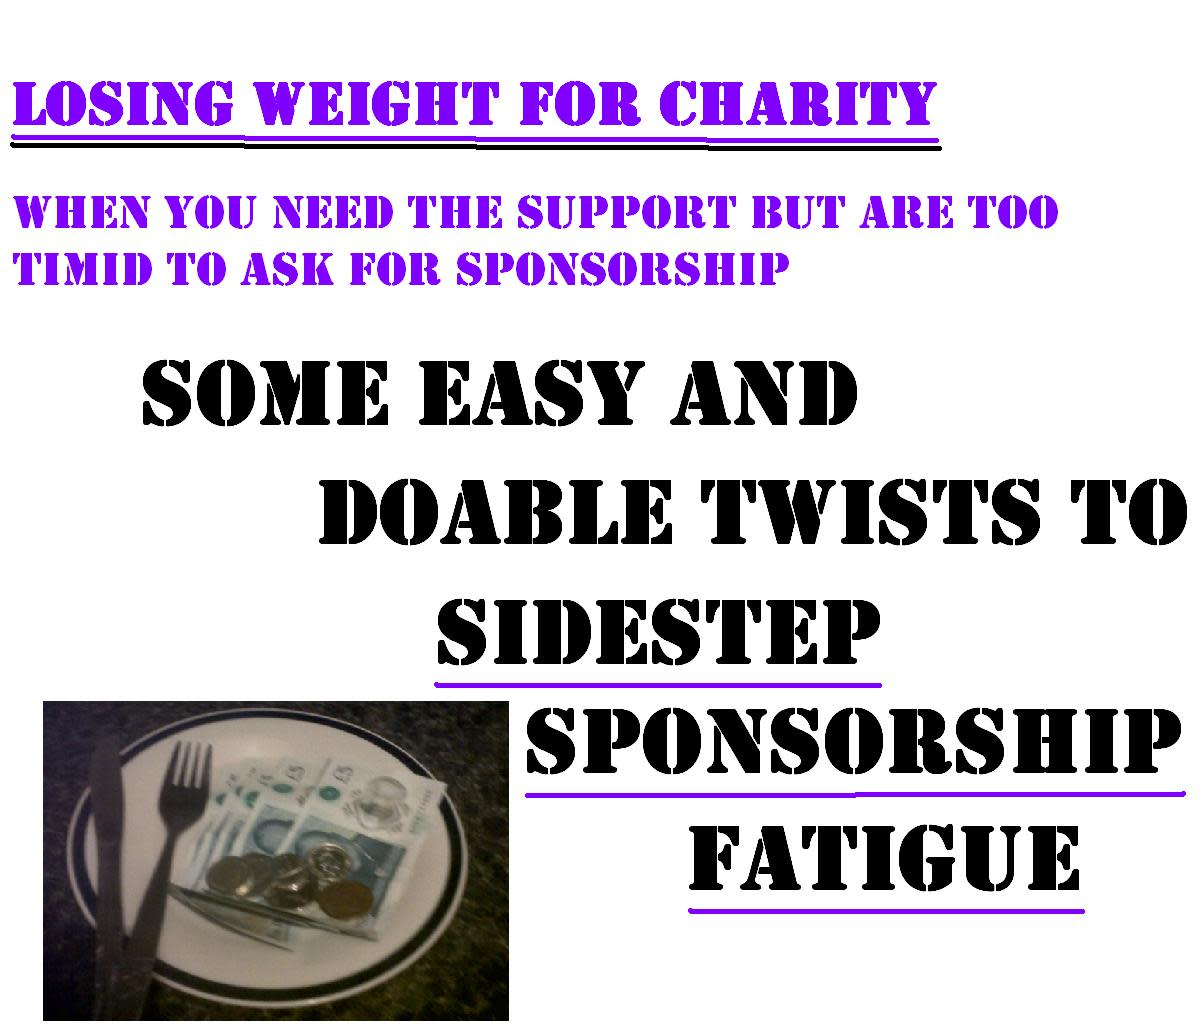 putting-a-twist-on-motivation-and-sponsorship-to-lose-weight-for-charity